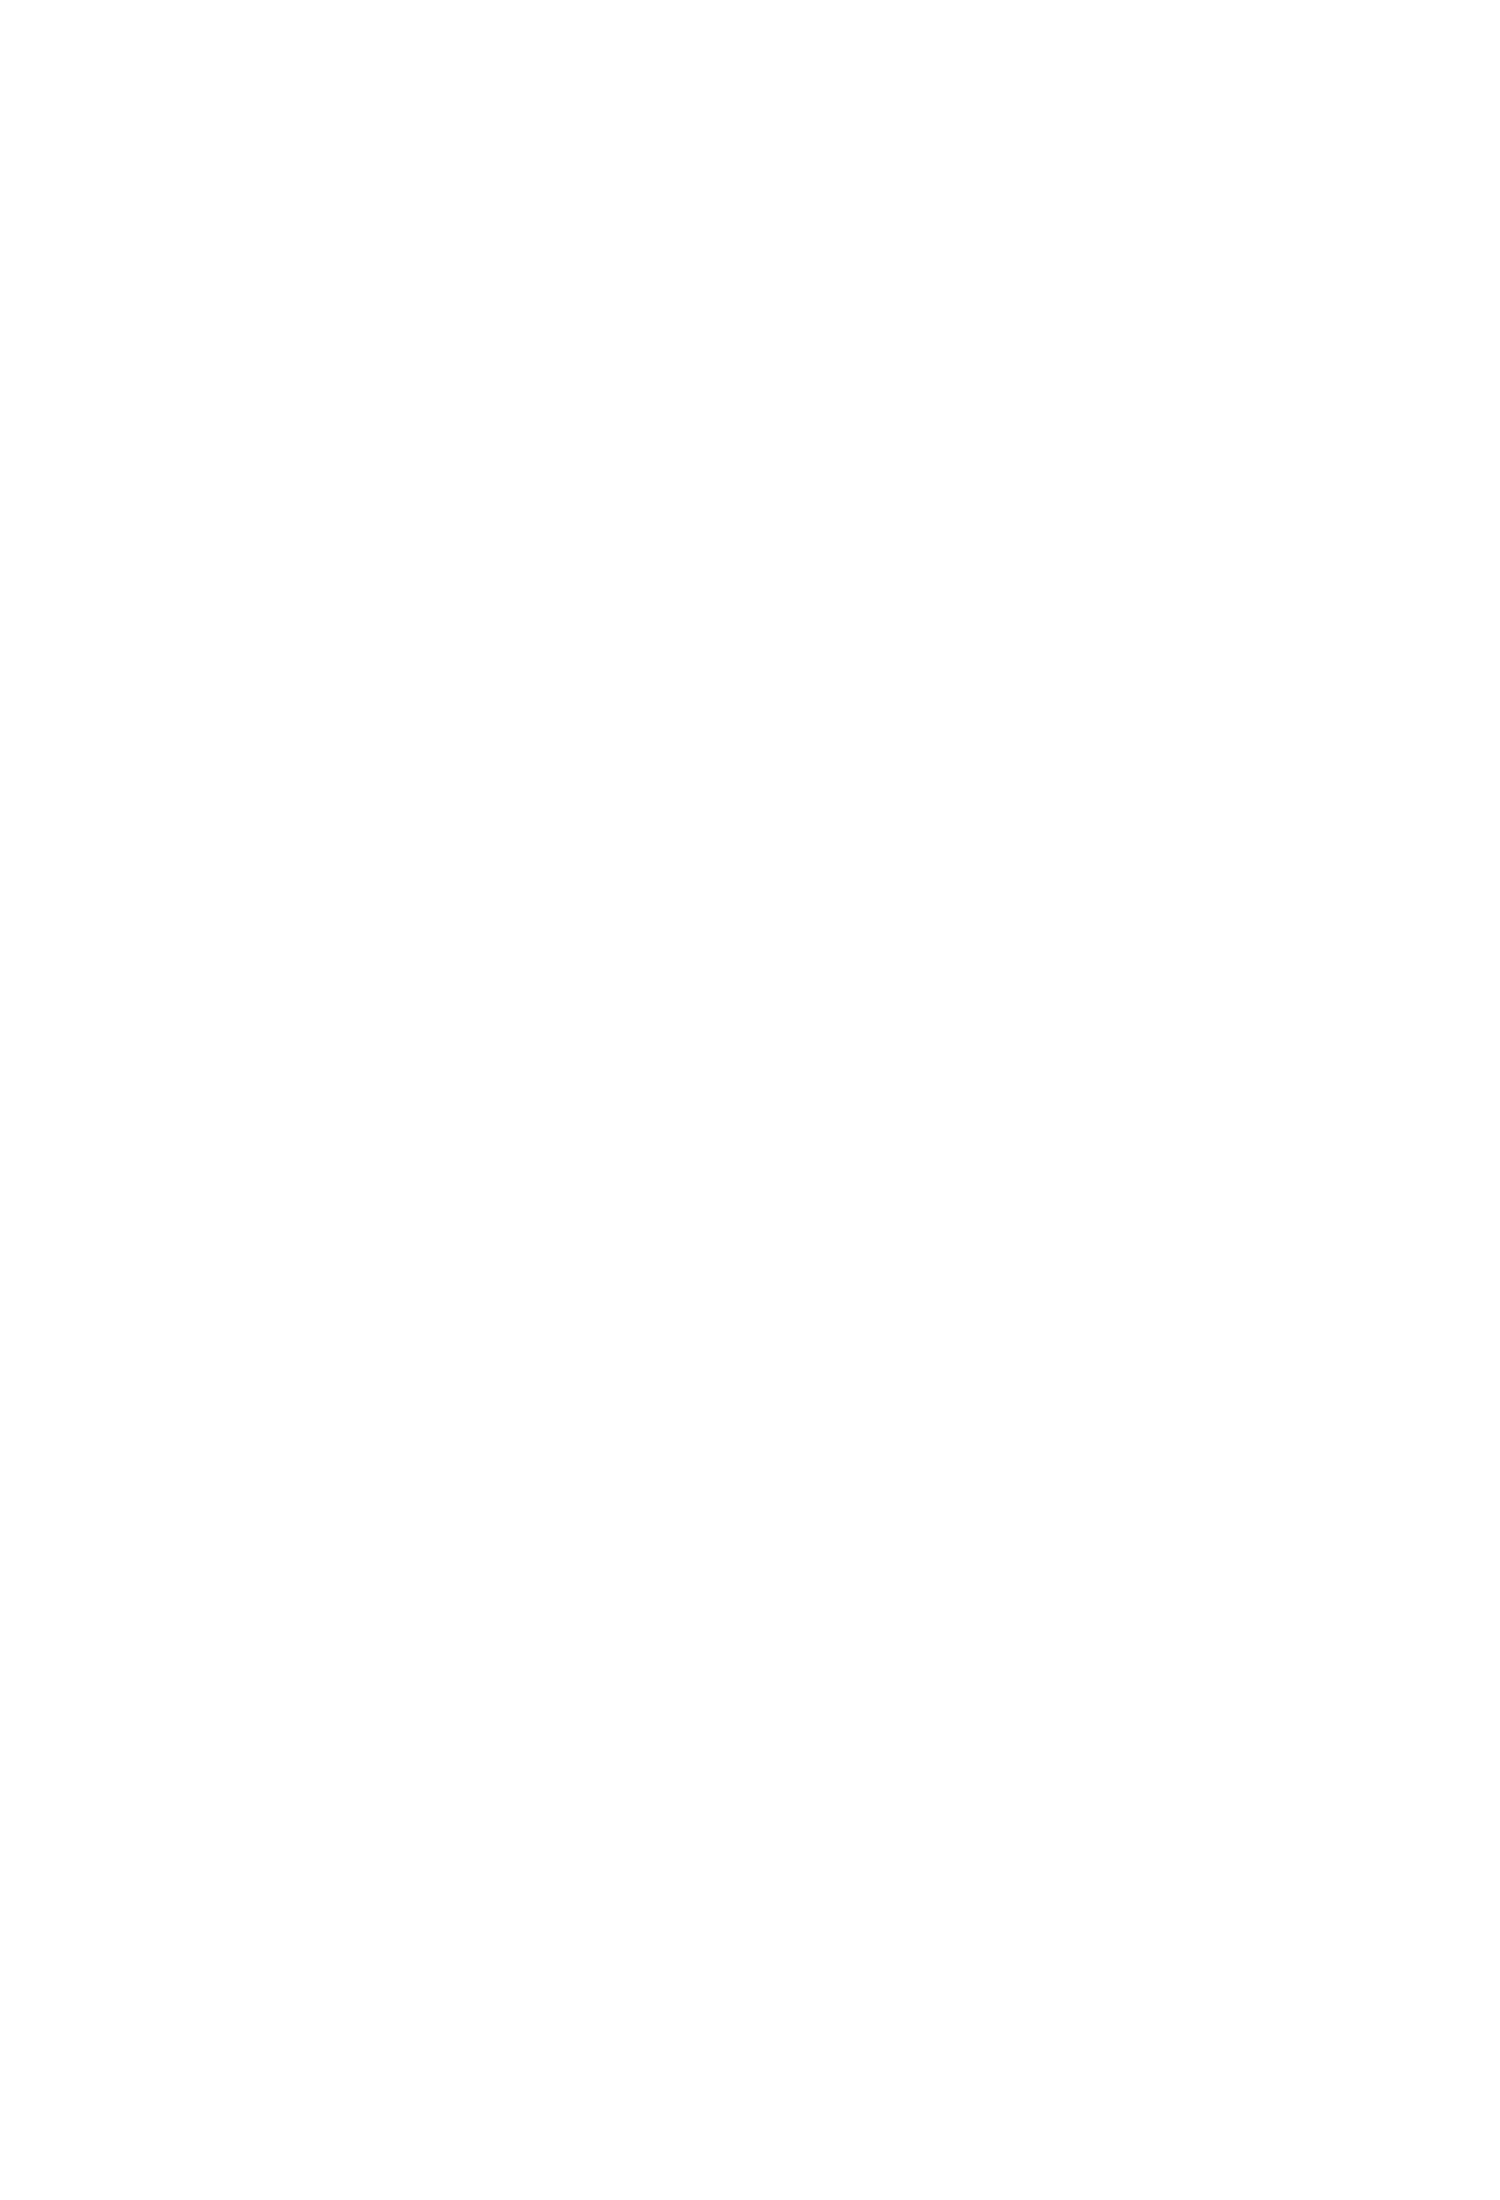 MARRYAT PLAYERS